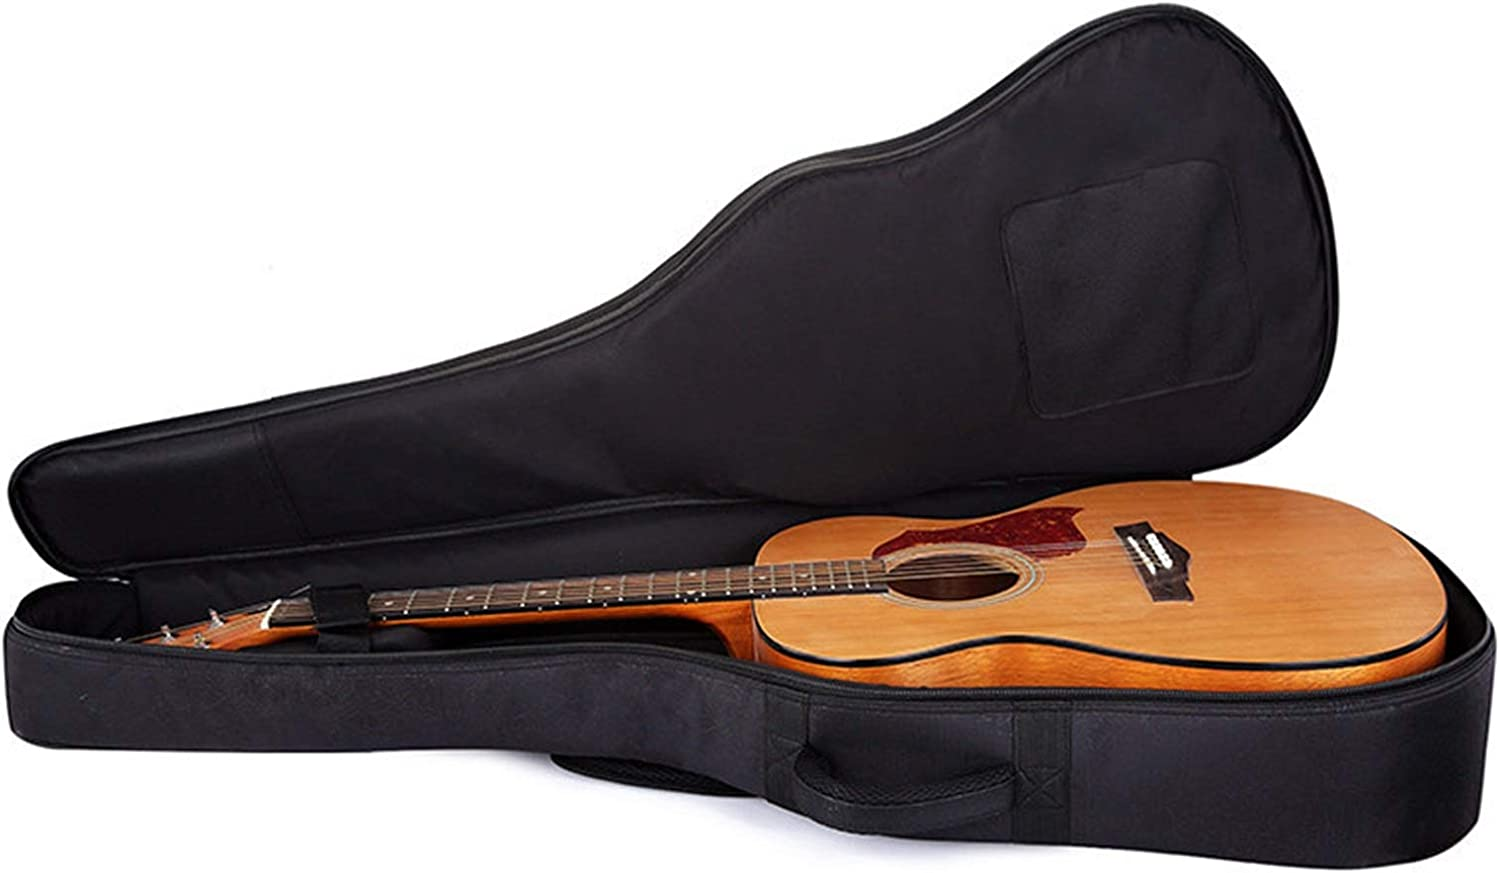 Guitar Bag Over Ranking TOP19 item handling Simple and Waterproof Thick Convenient Shockproof